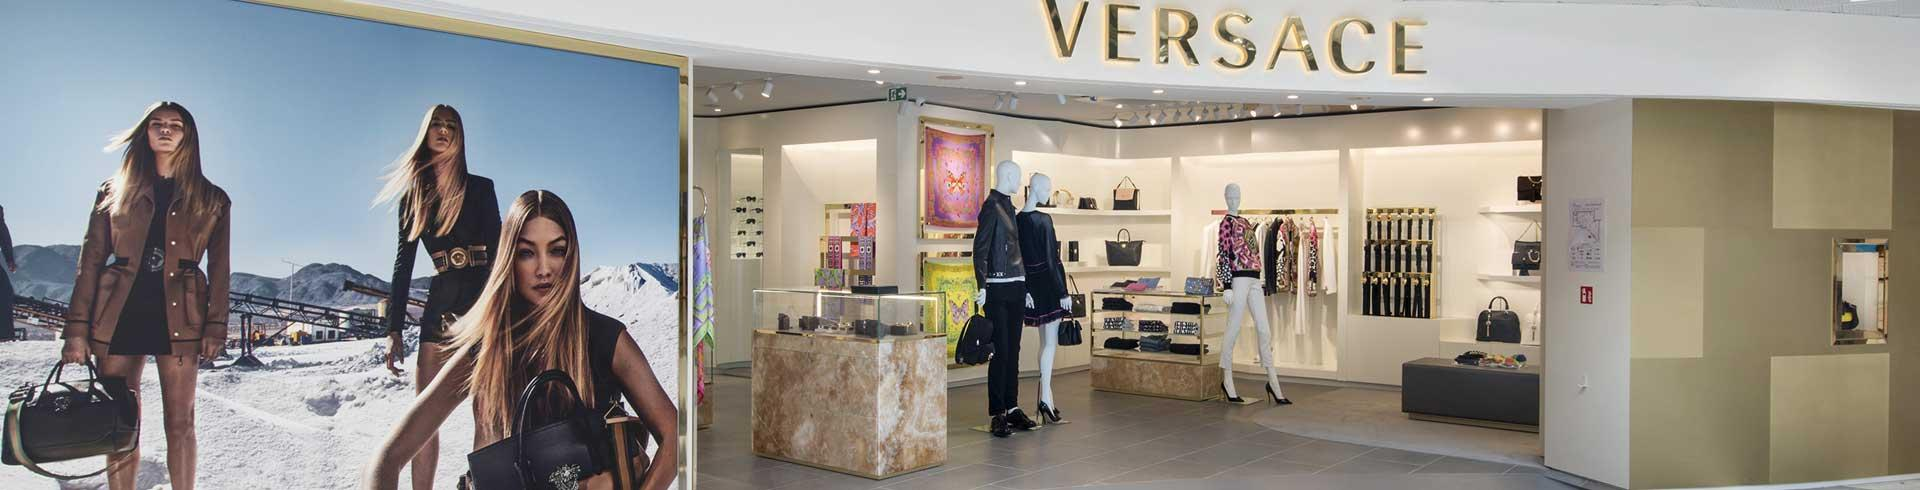 versace fashion accessories terminal 1 shops services la promenade nice airport. Black Bedroom Furniture Sets. Home Design Ideas